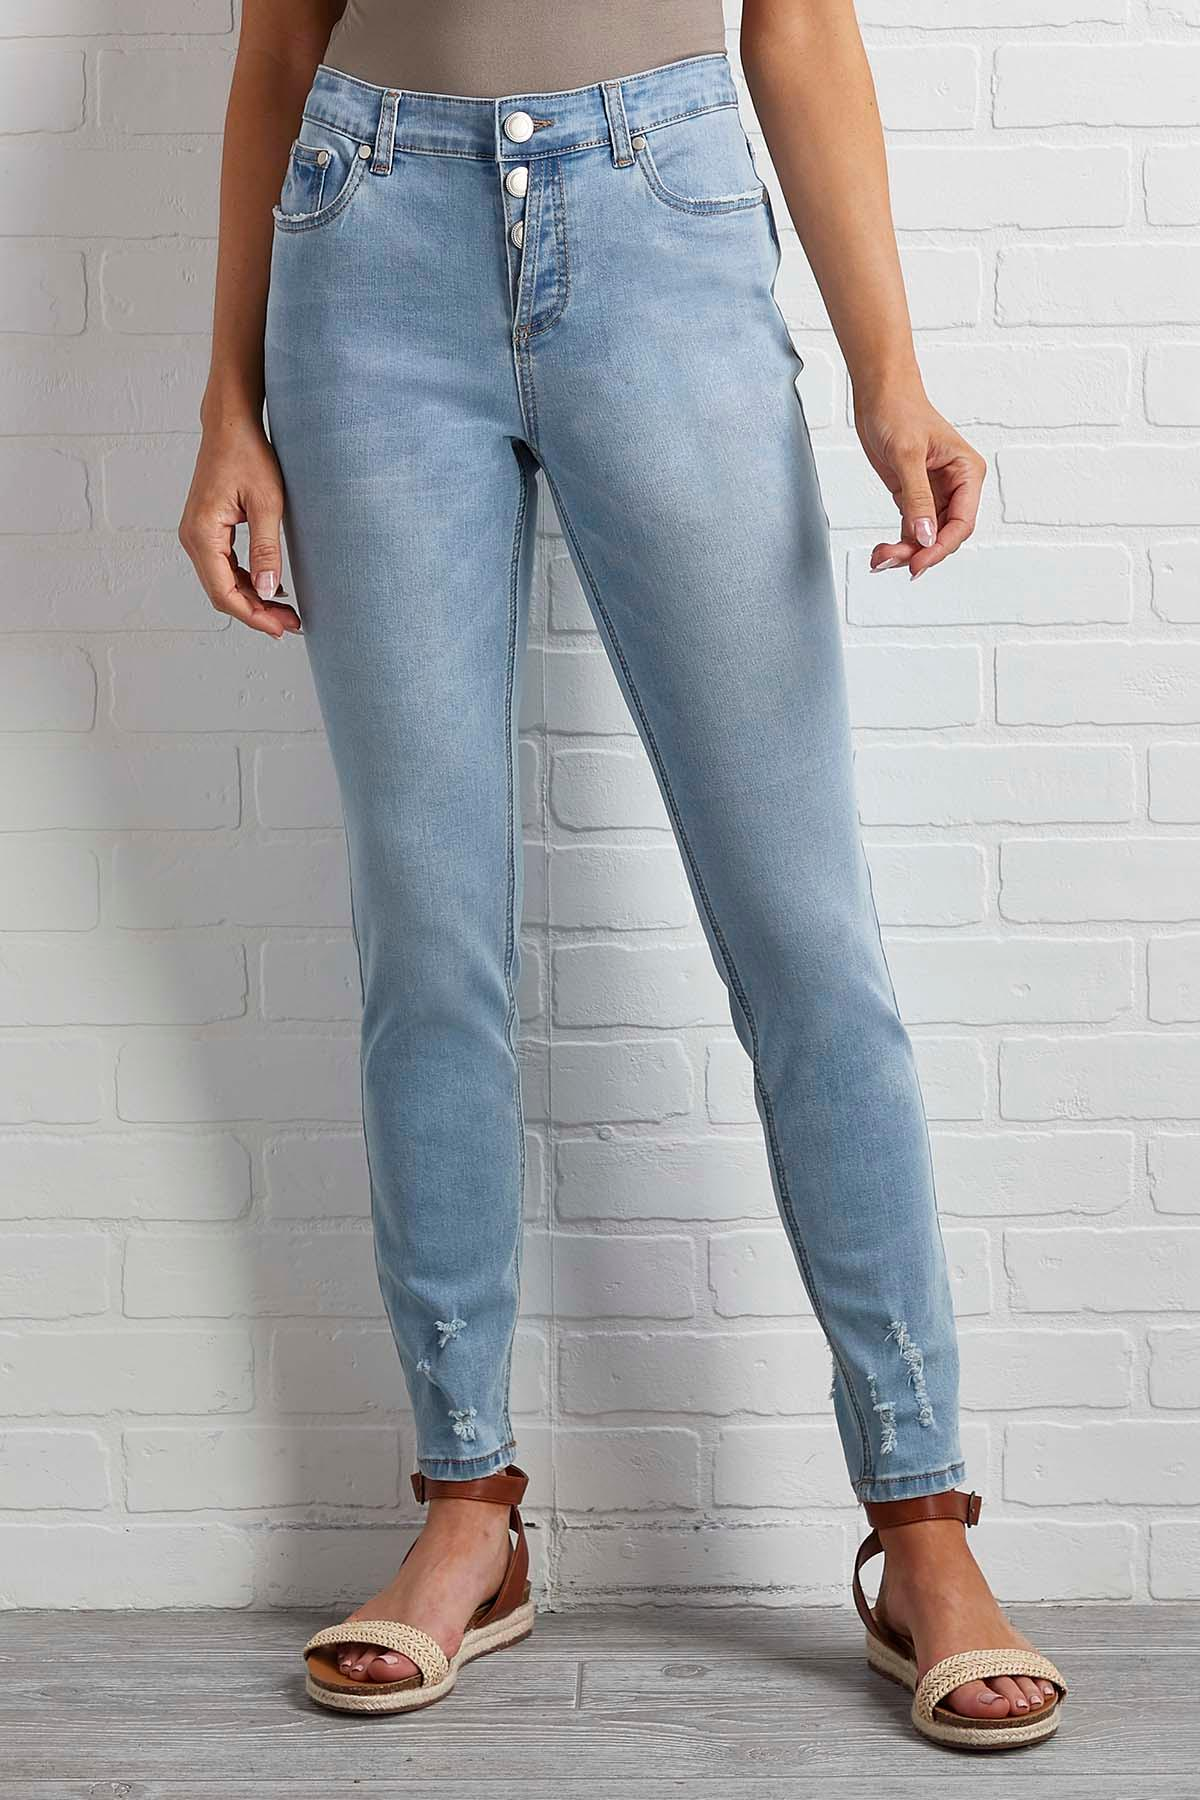 State Of Distressed Skinny Jeans